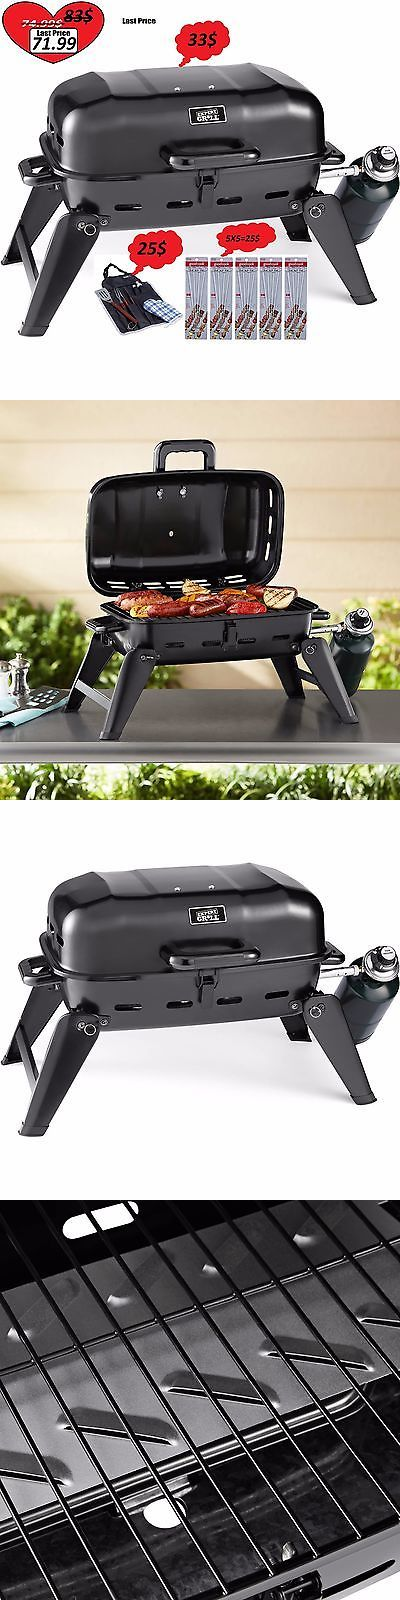 Camping BBQs and Grills 181388: Set Expert Grill Tabletop Gas Grill Barbecues Camping Bbqs Portable -> BUY IT NOW ONLY: $71.99 on eBay!